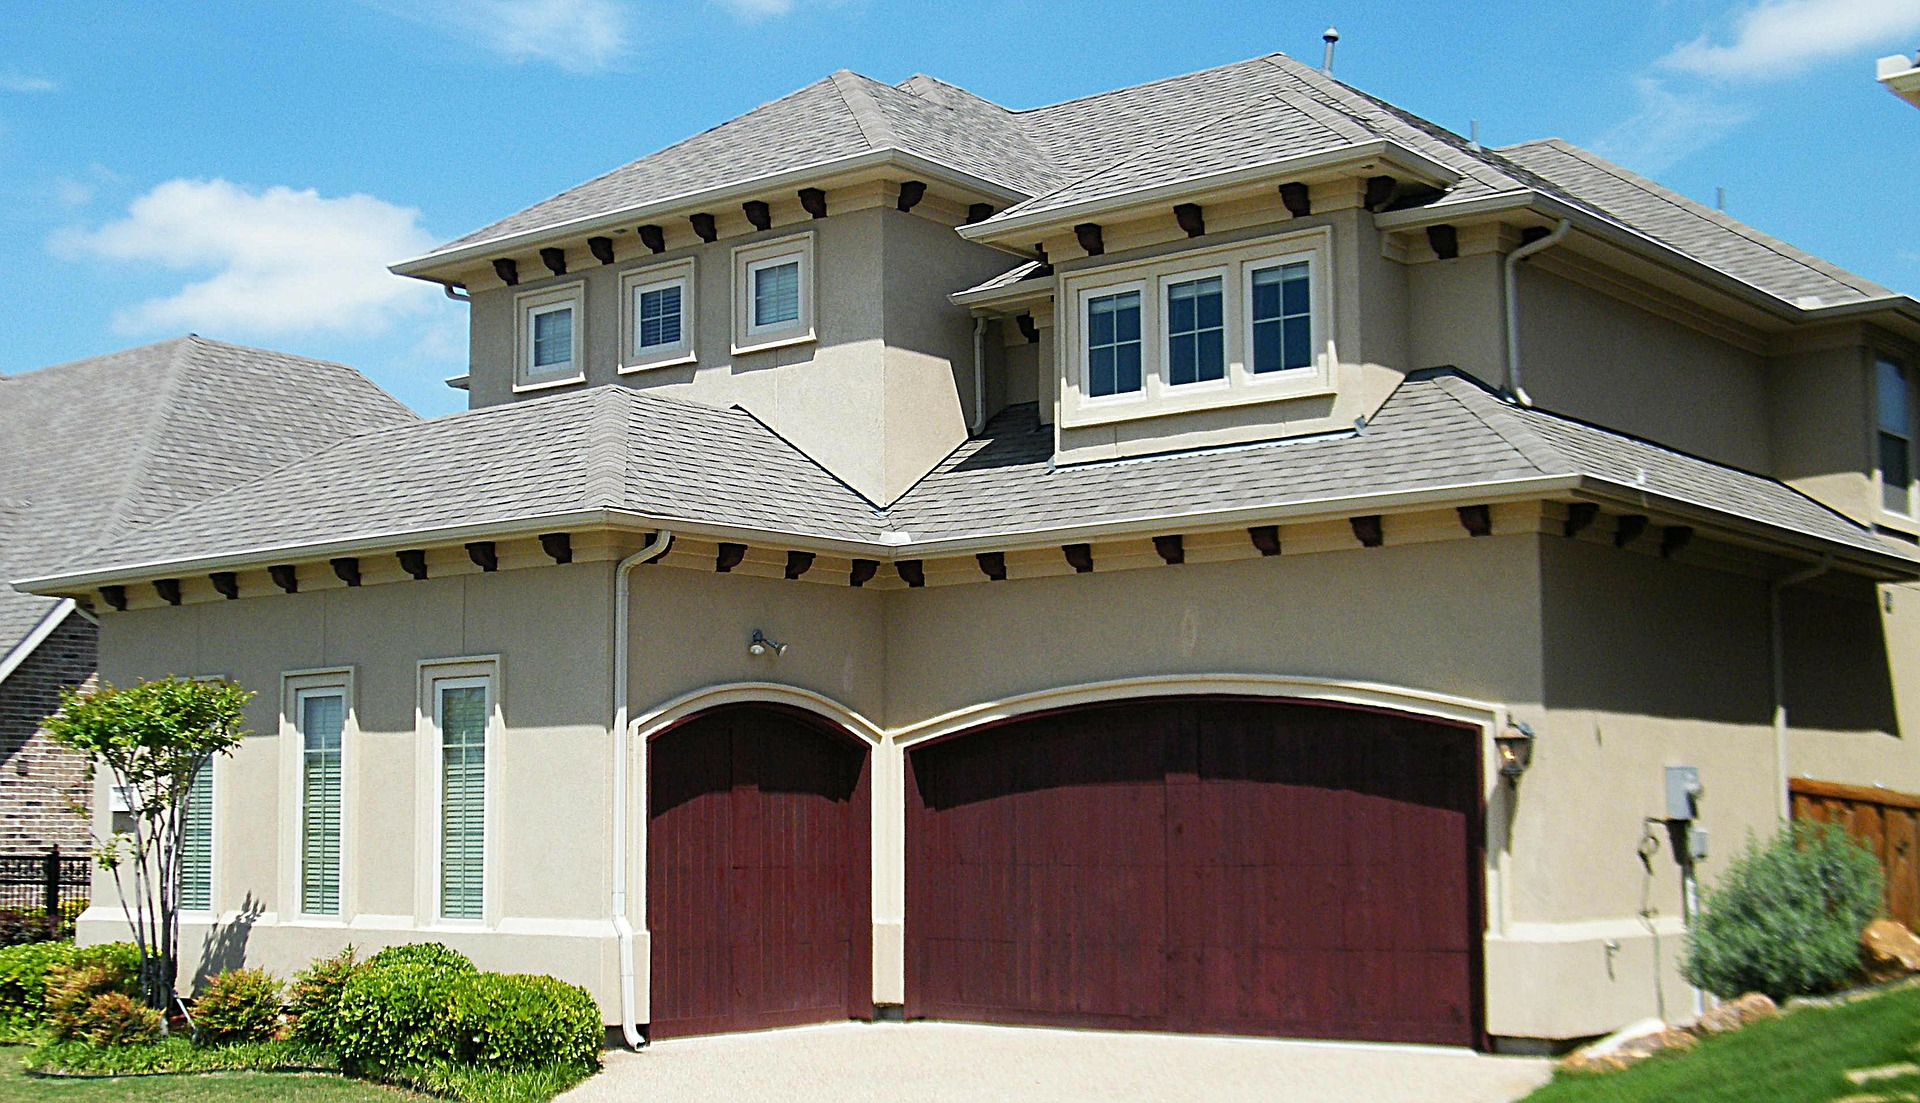 Garage Door Parts Reno Nv Garage Door Services 247 Locksmith Nevada